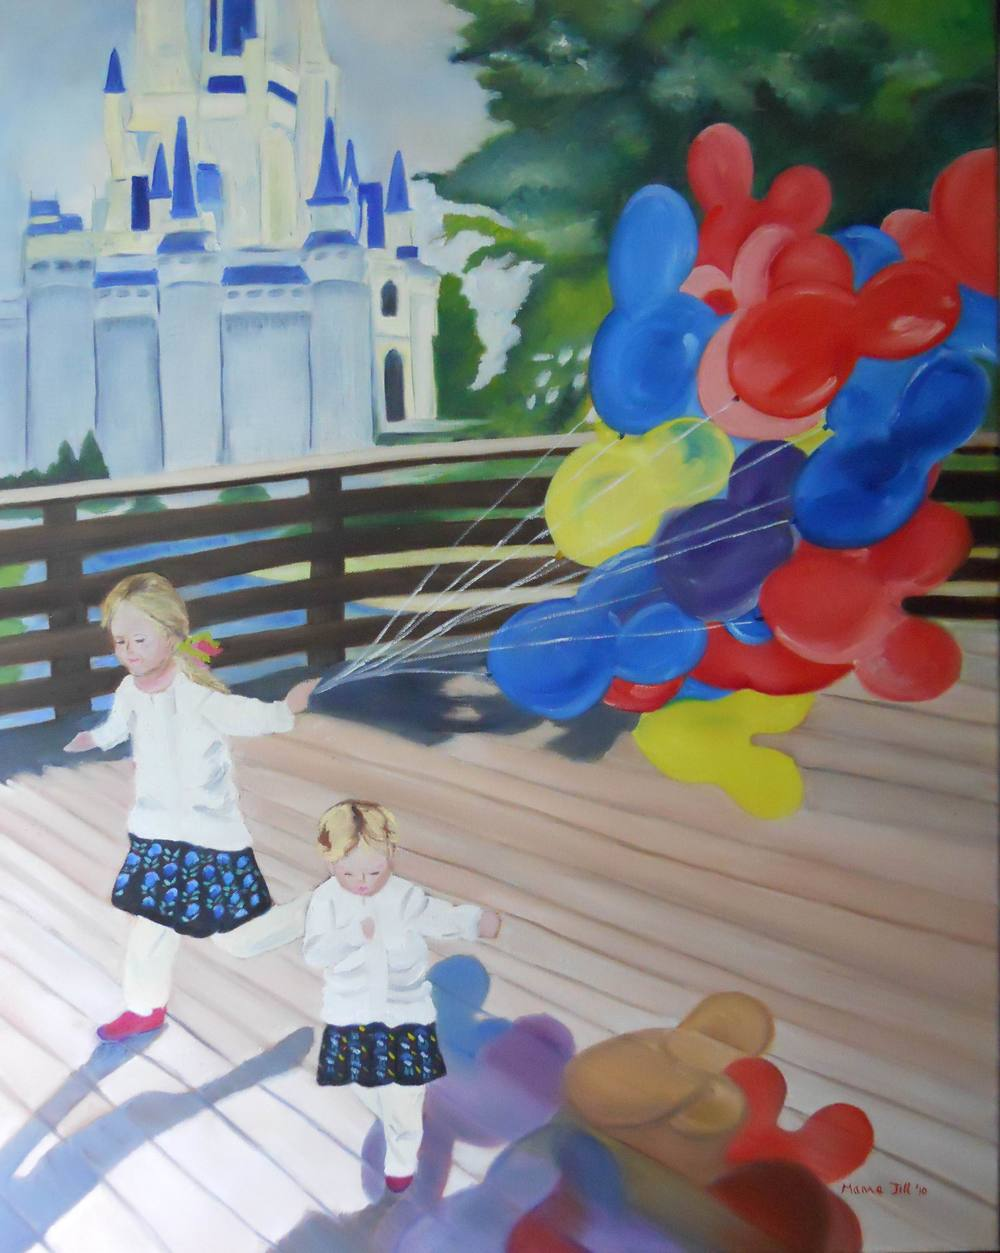 Ashley & Taylor - 30x24 in WDW